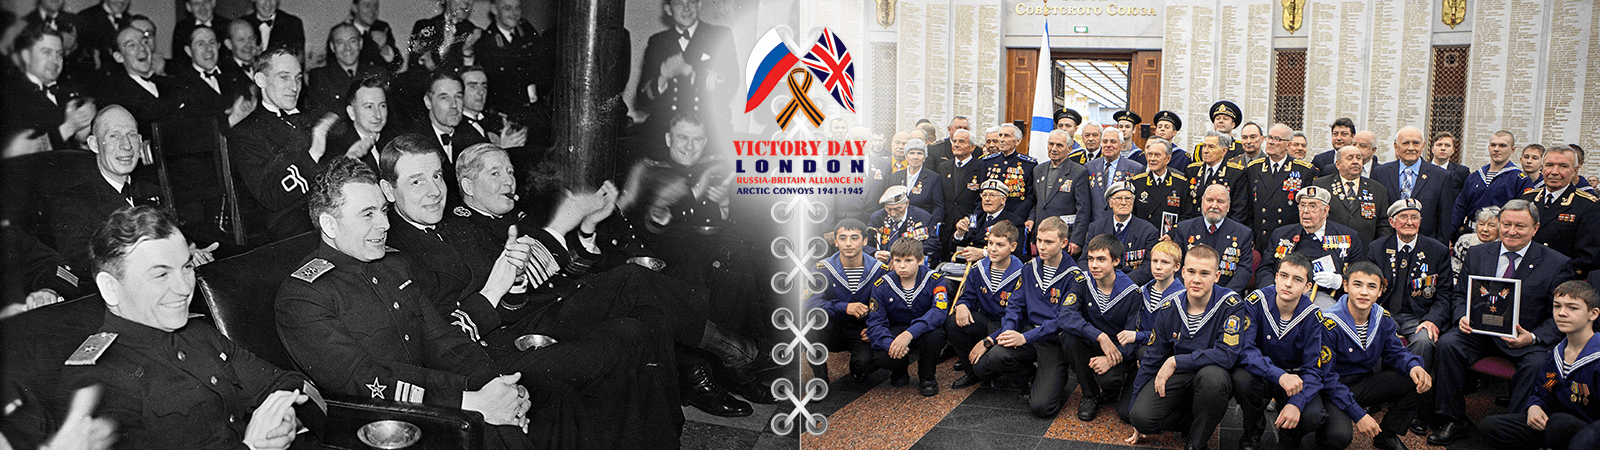 victory day london